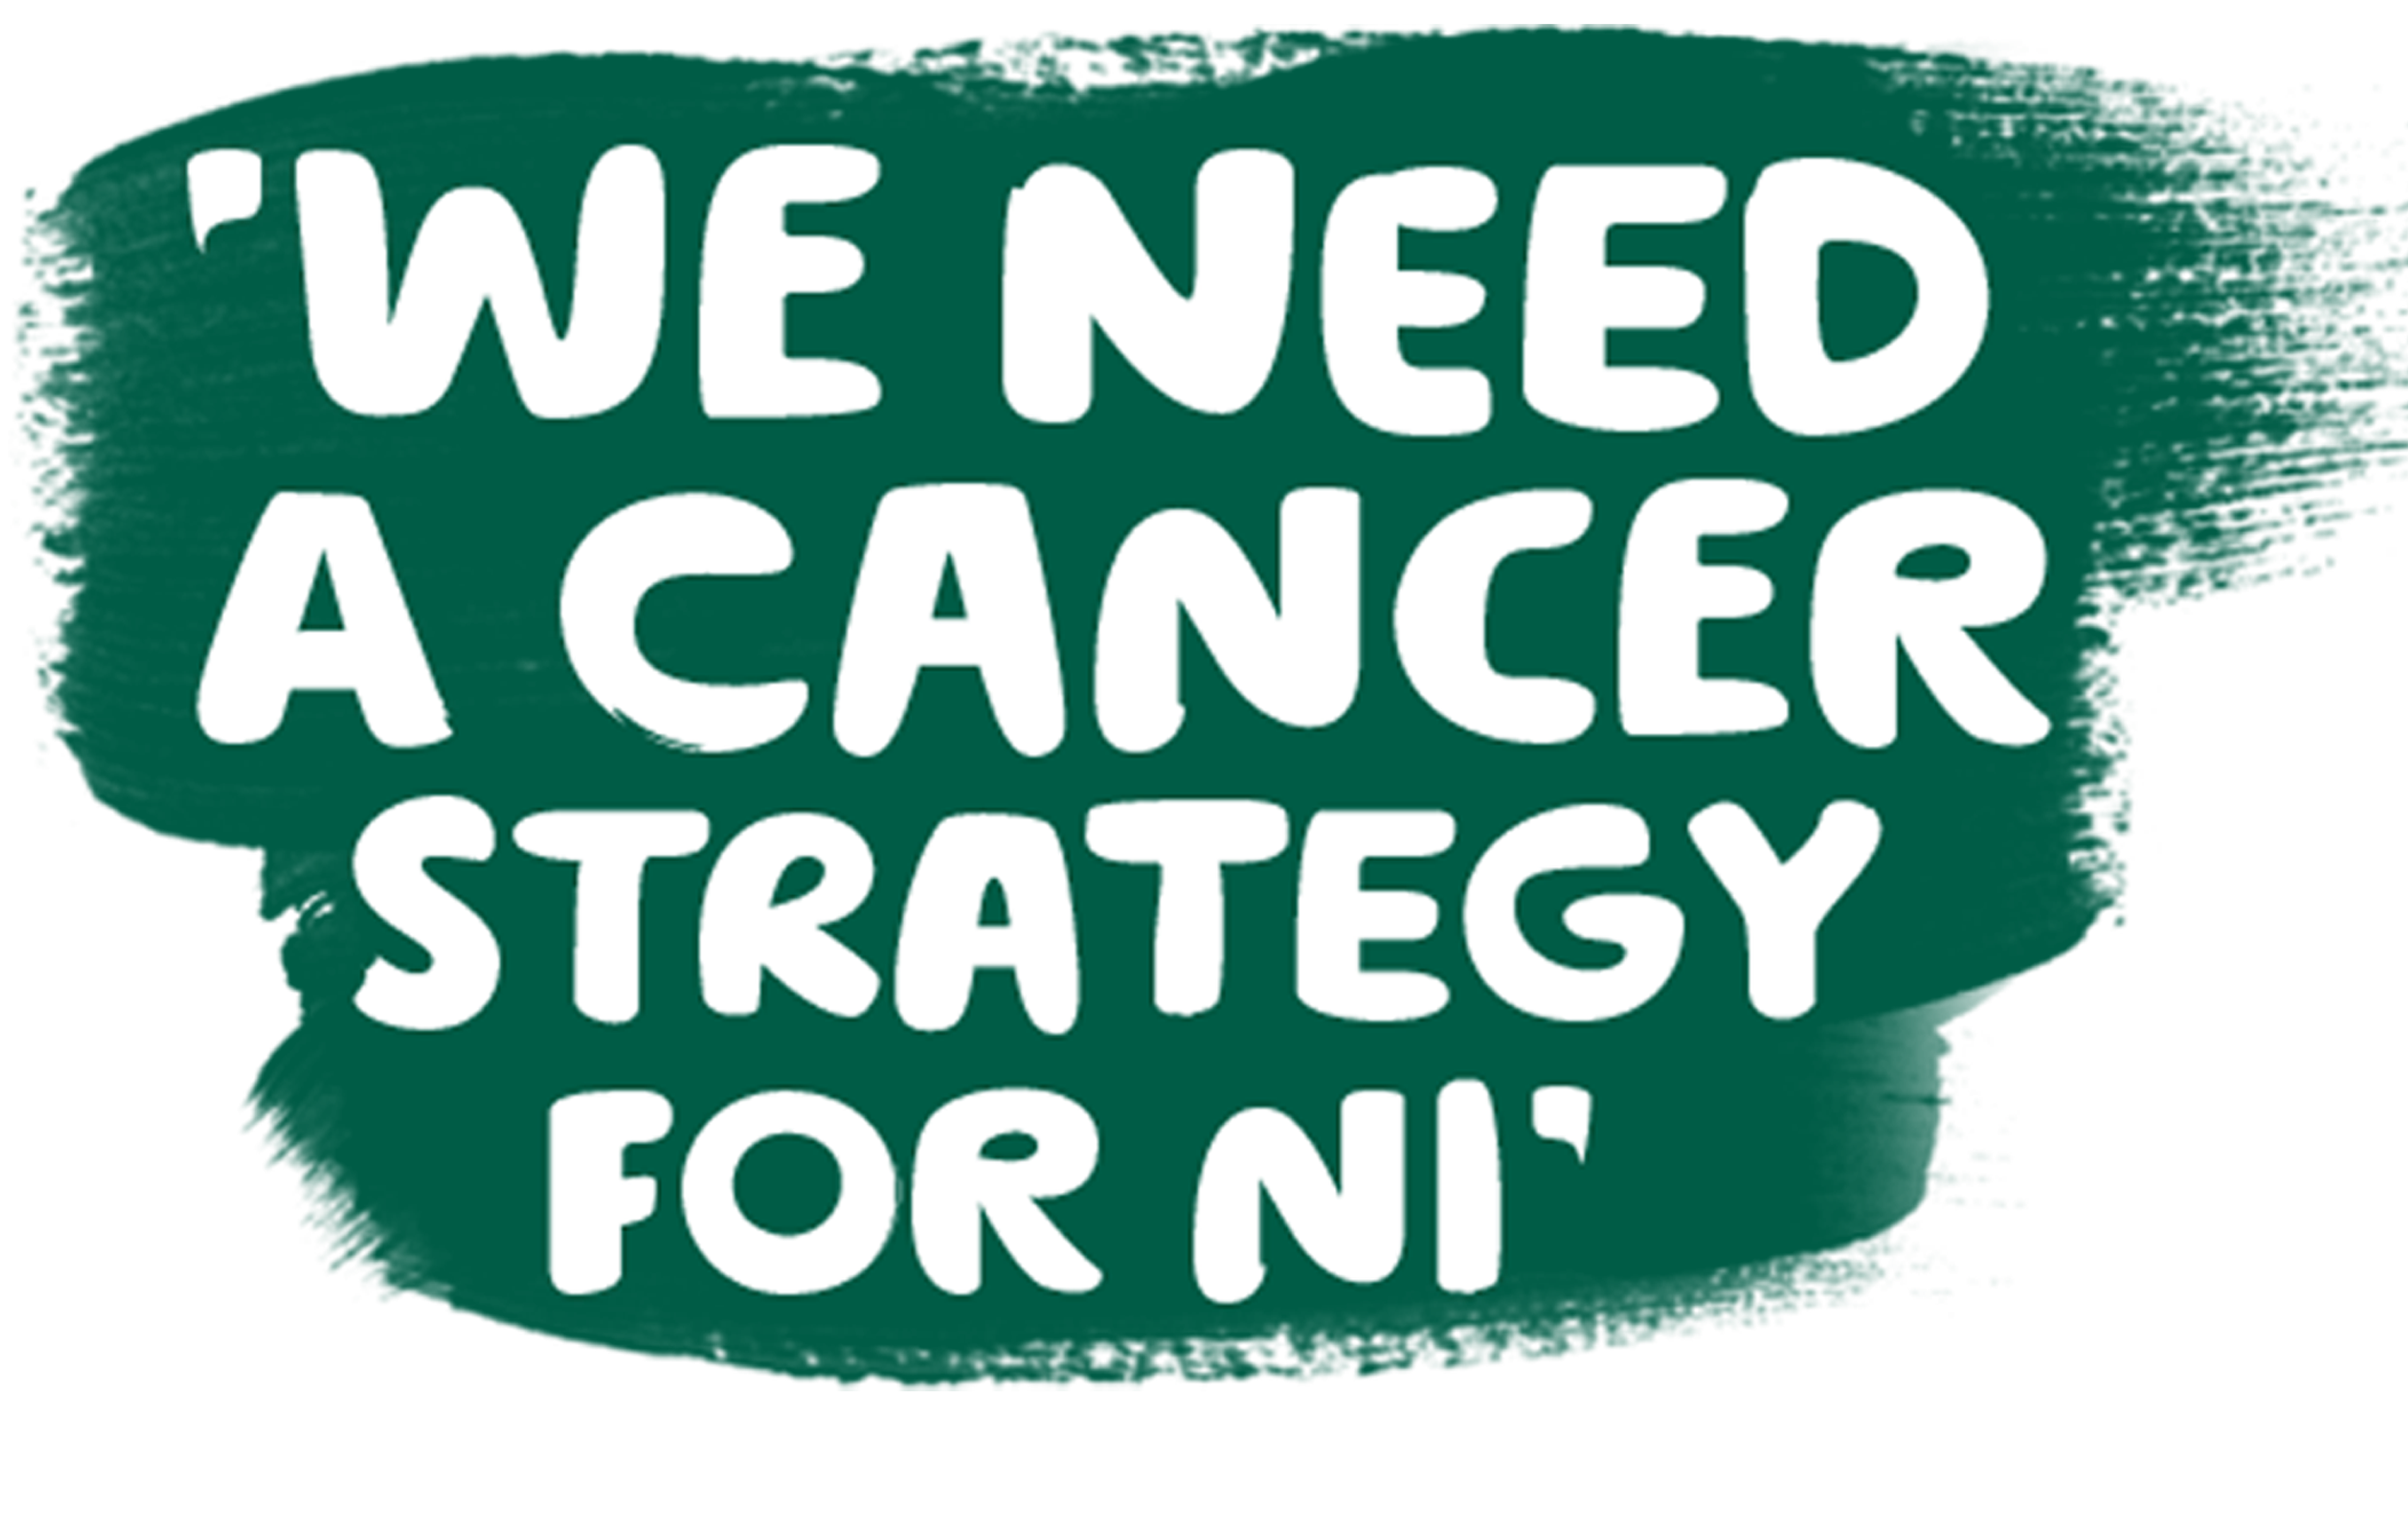 'We need a cancer strategy for Northern Ireland'